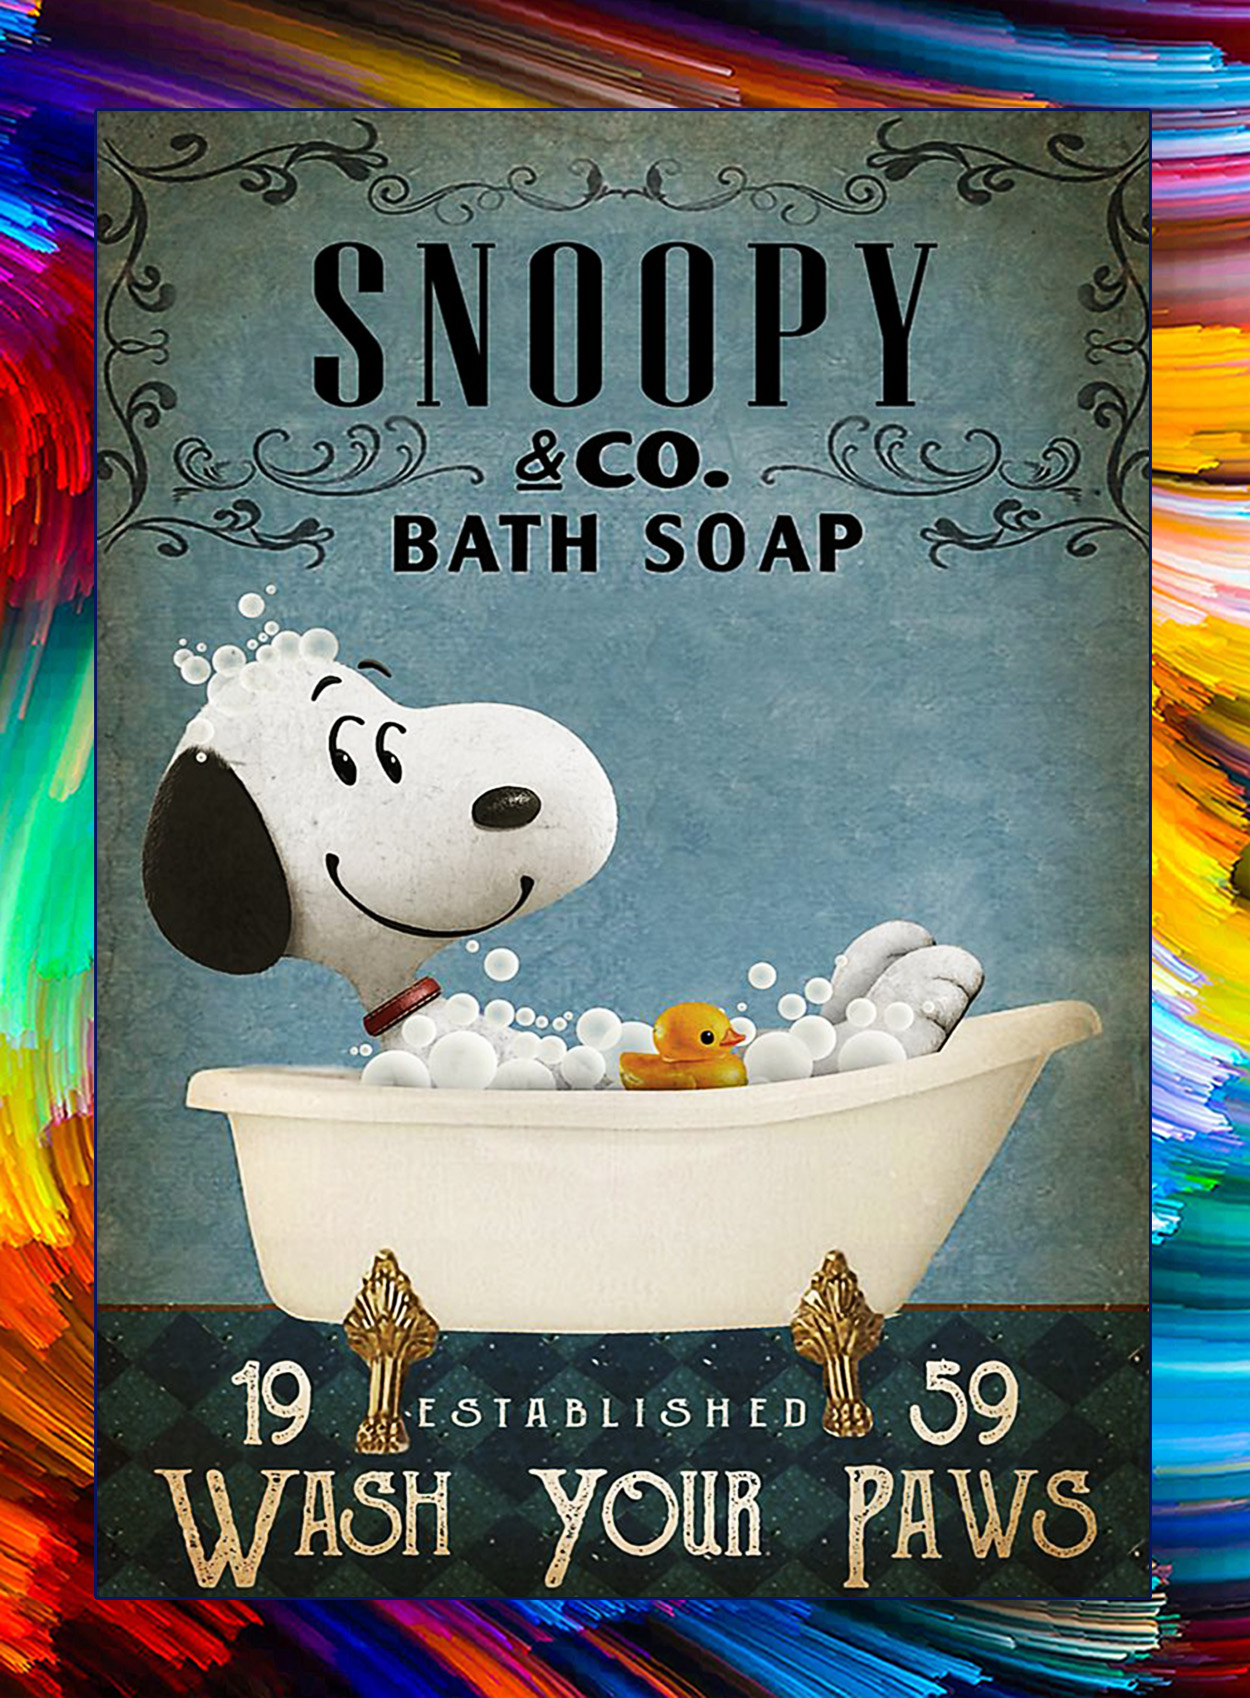 Snoopy co bath soap wash your paws poster - A3